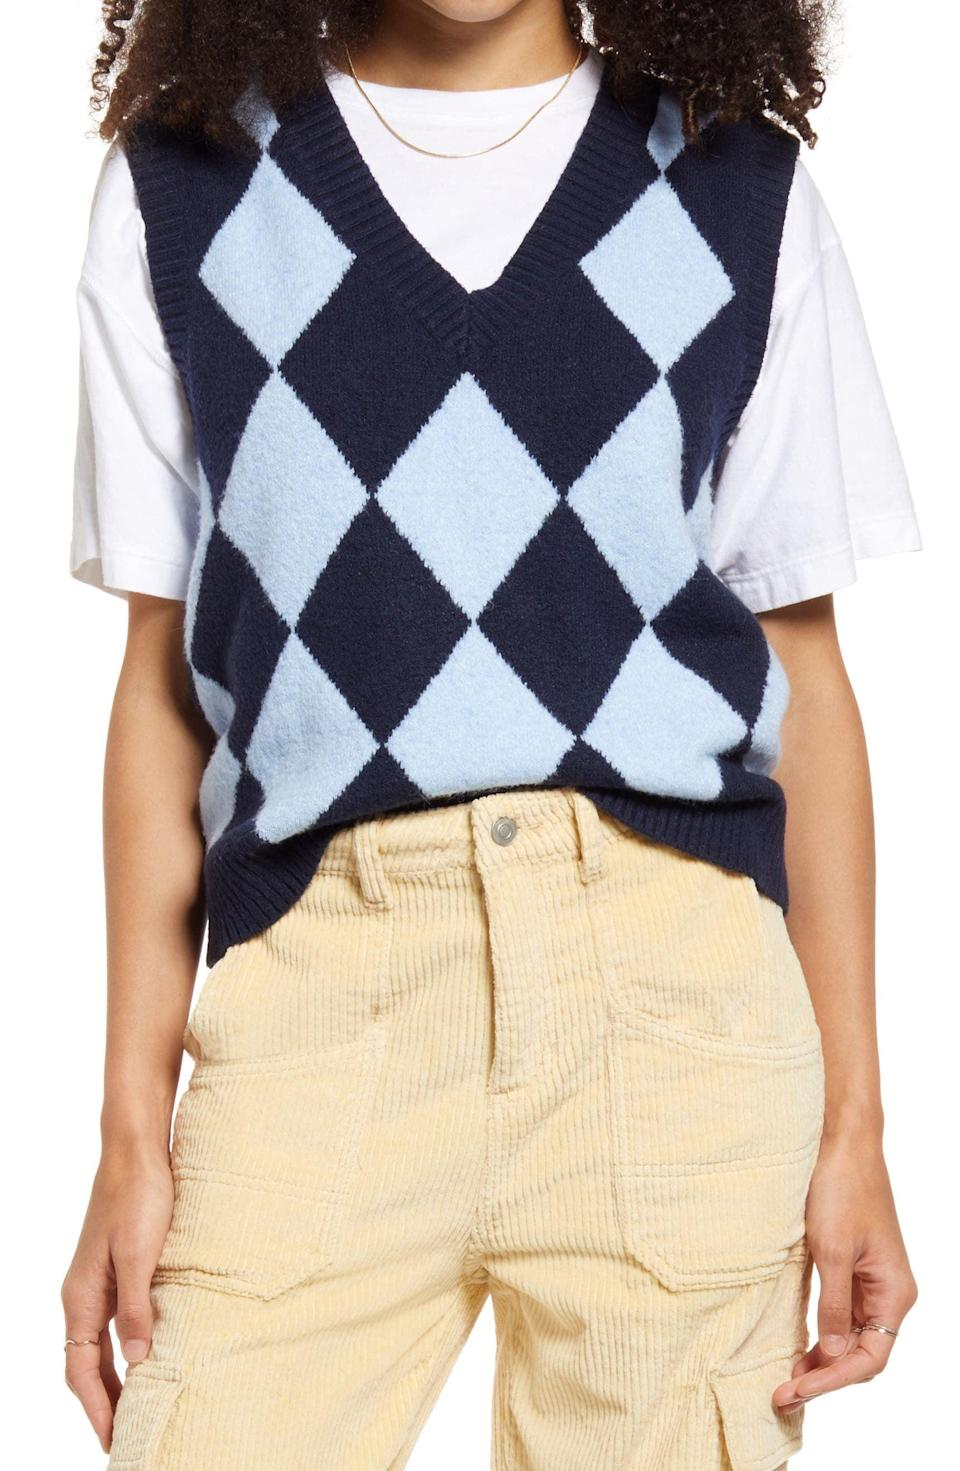 <p>On days when you're running late to class, this <span>BP. Disco Sweater Vest</span> ($39) will instantly make you look put-together. Whether worn on its own or over a long-sleeve shirt, it's the ideal versatile layer. </p>